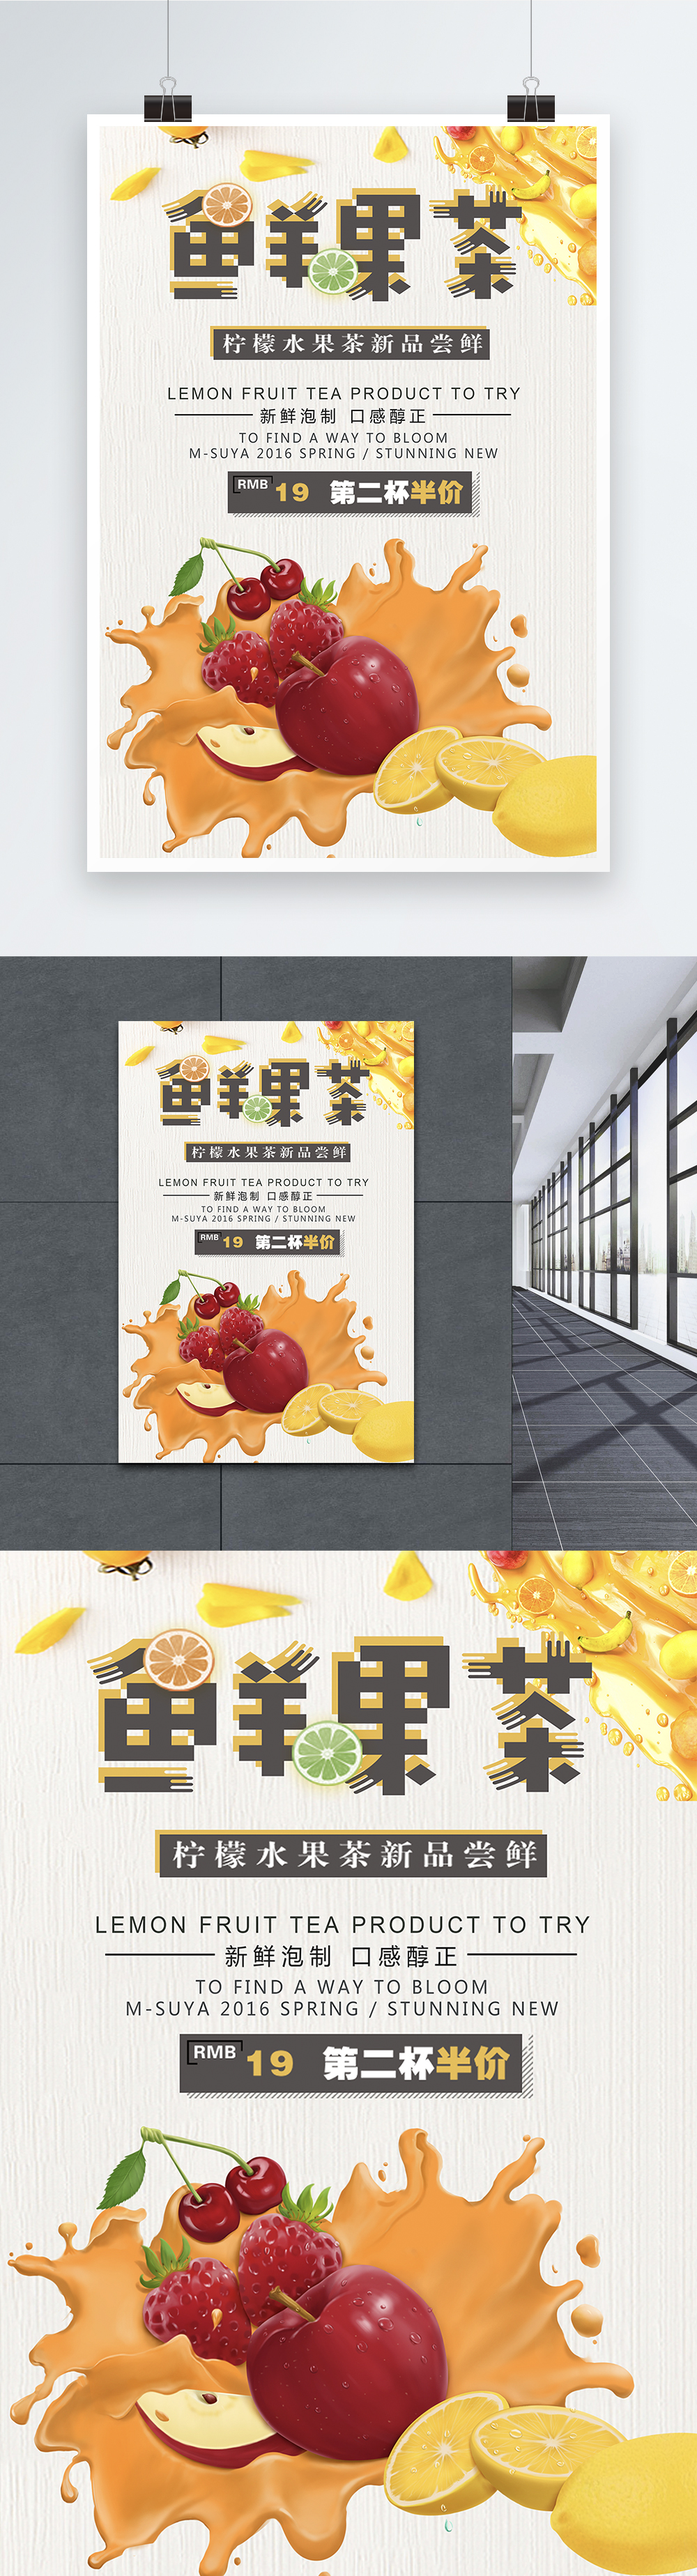 Summer fruit tea drinks poster template image_picture free ...